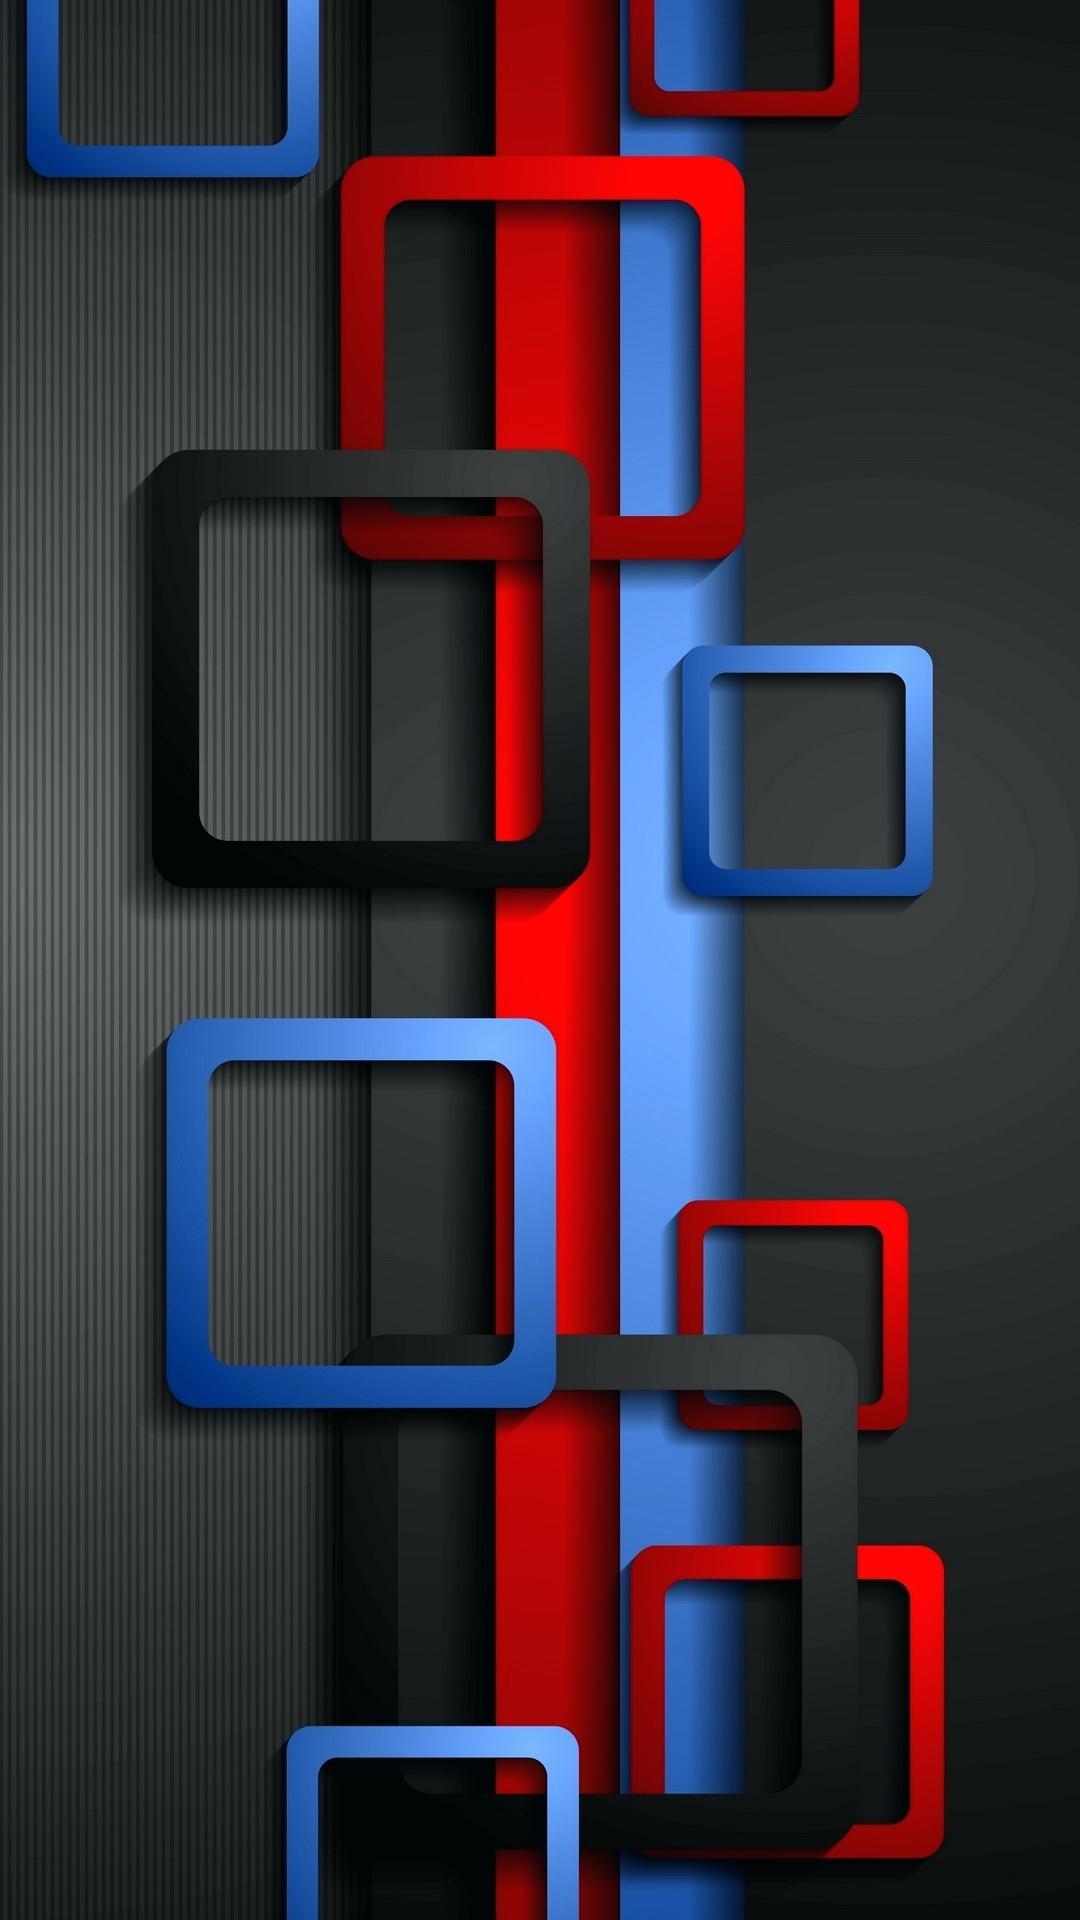 Wallpaper Full HD for Mobile with Red Blue and Black